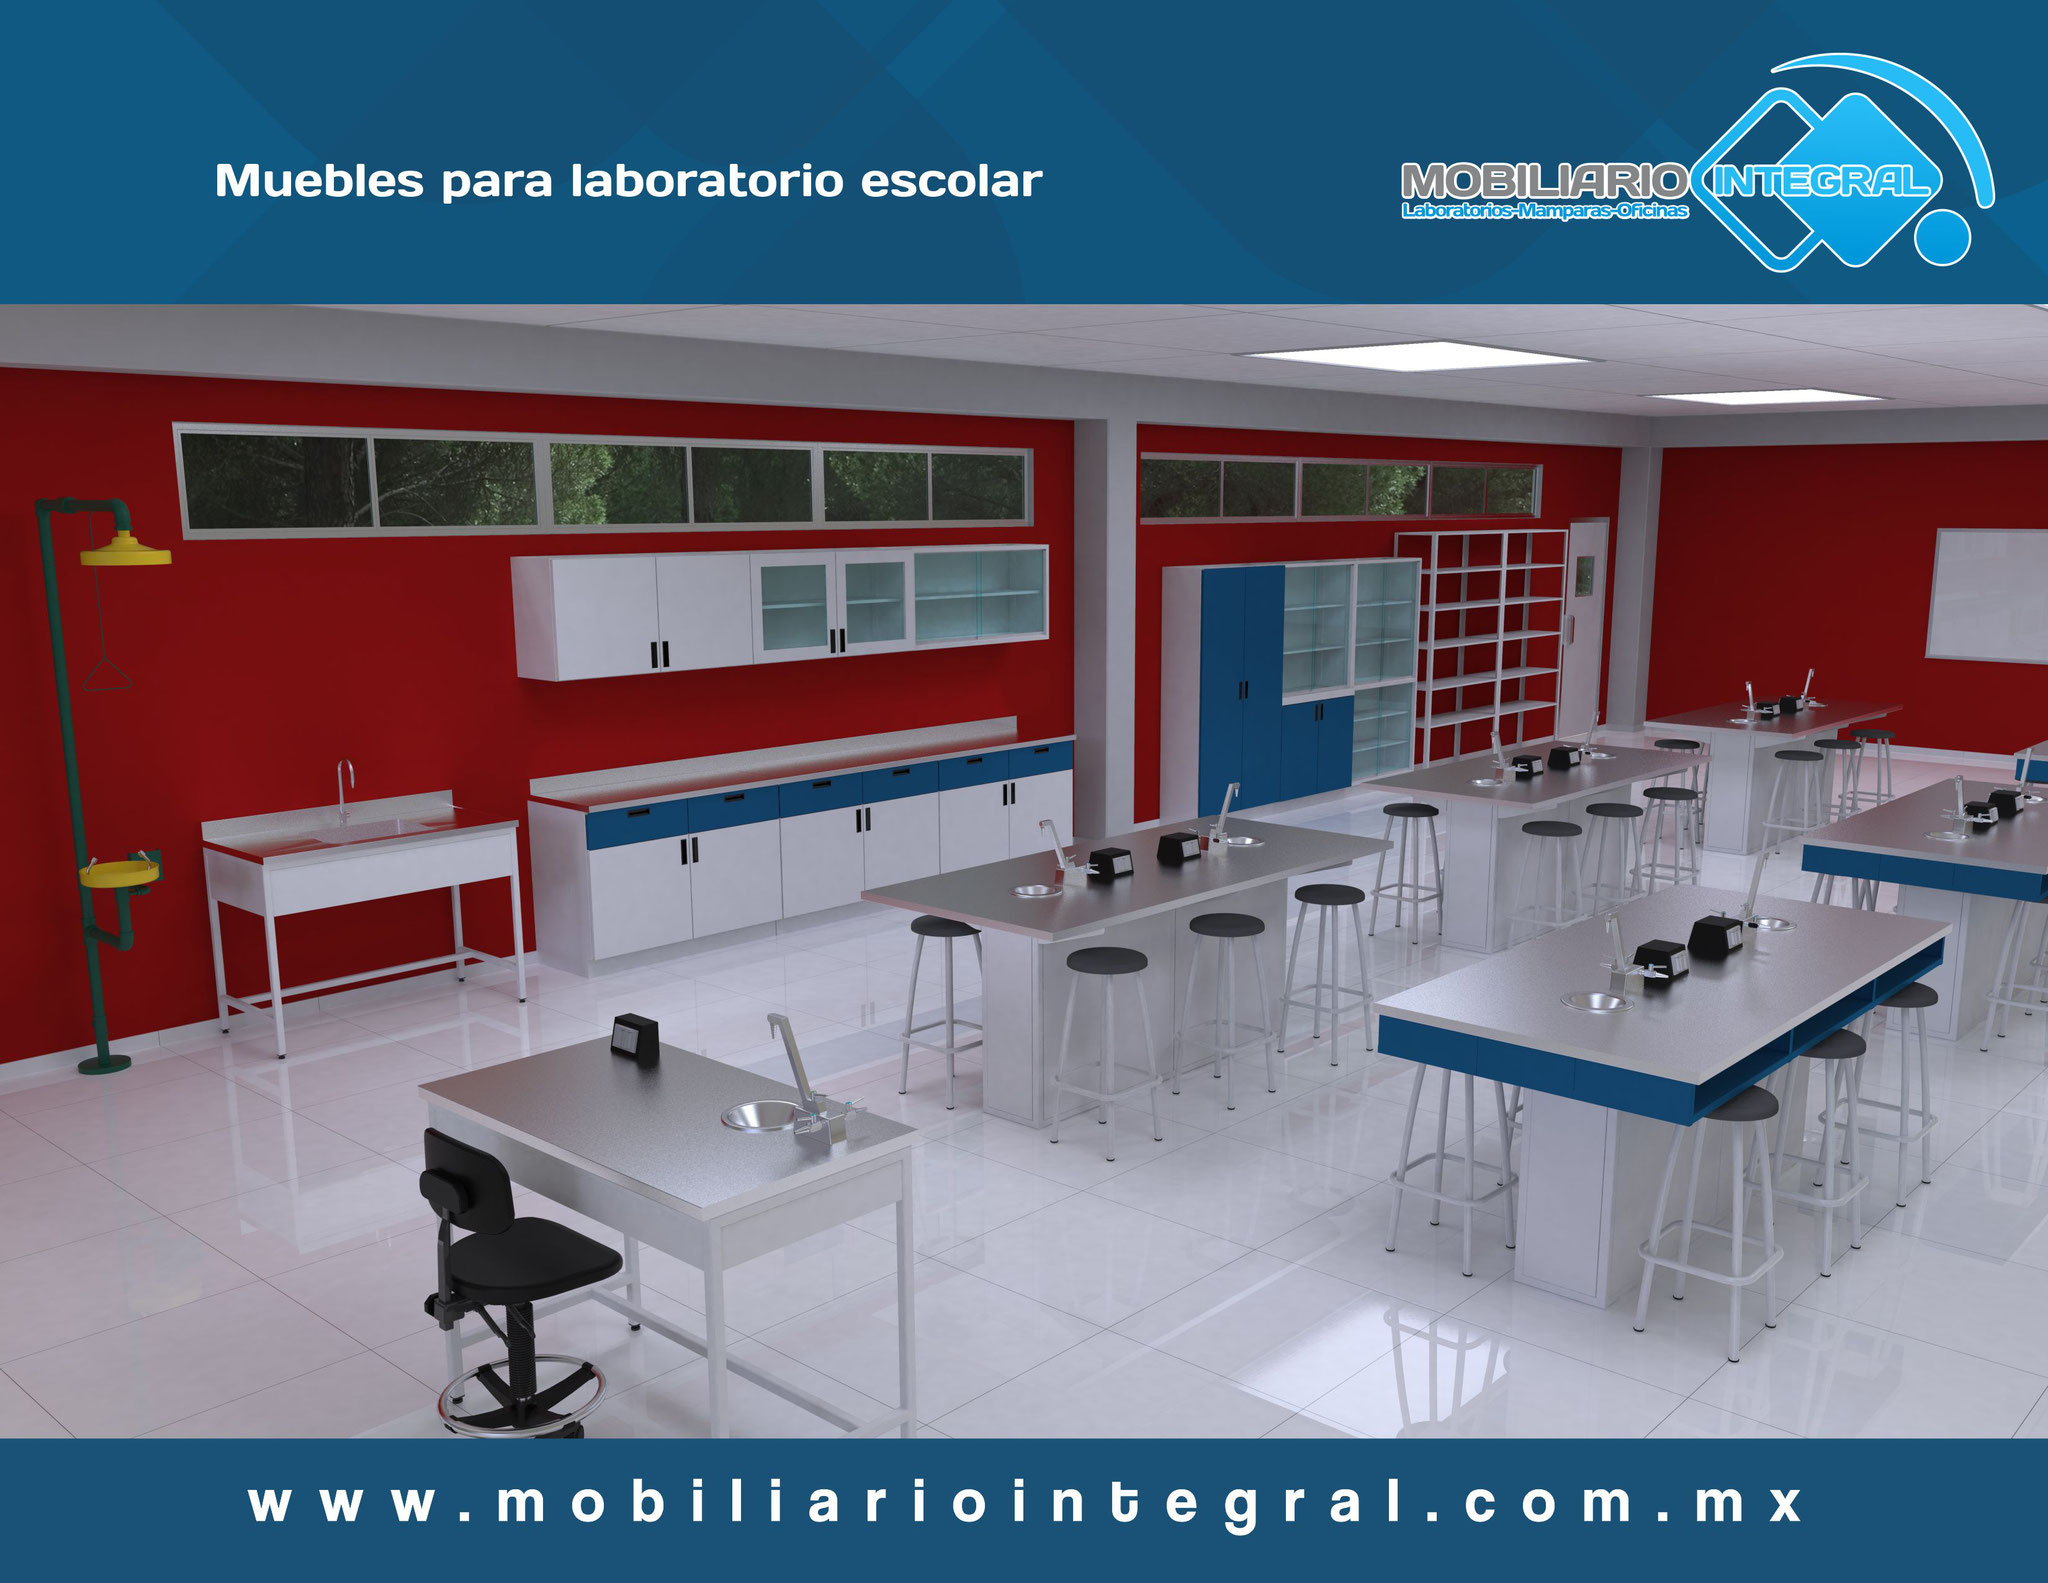 Muebles para laboratorio escolar CDMX